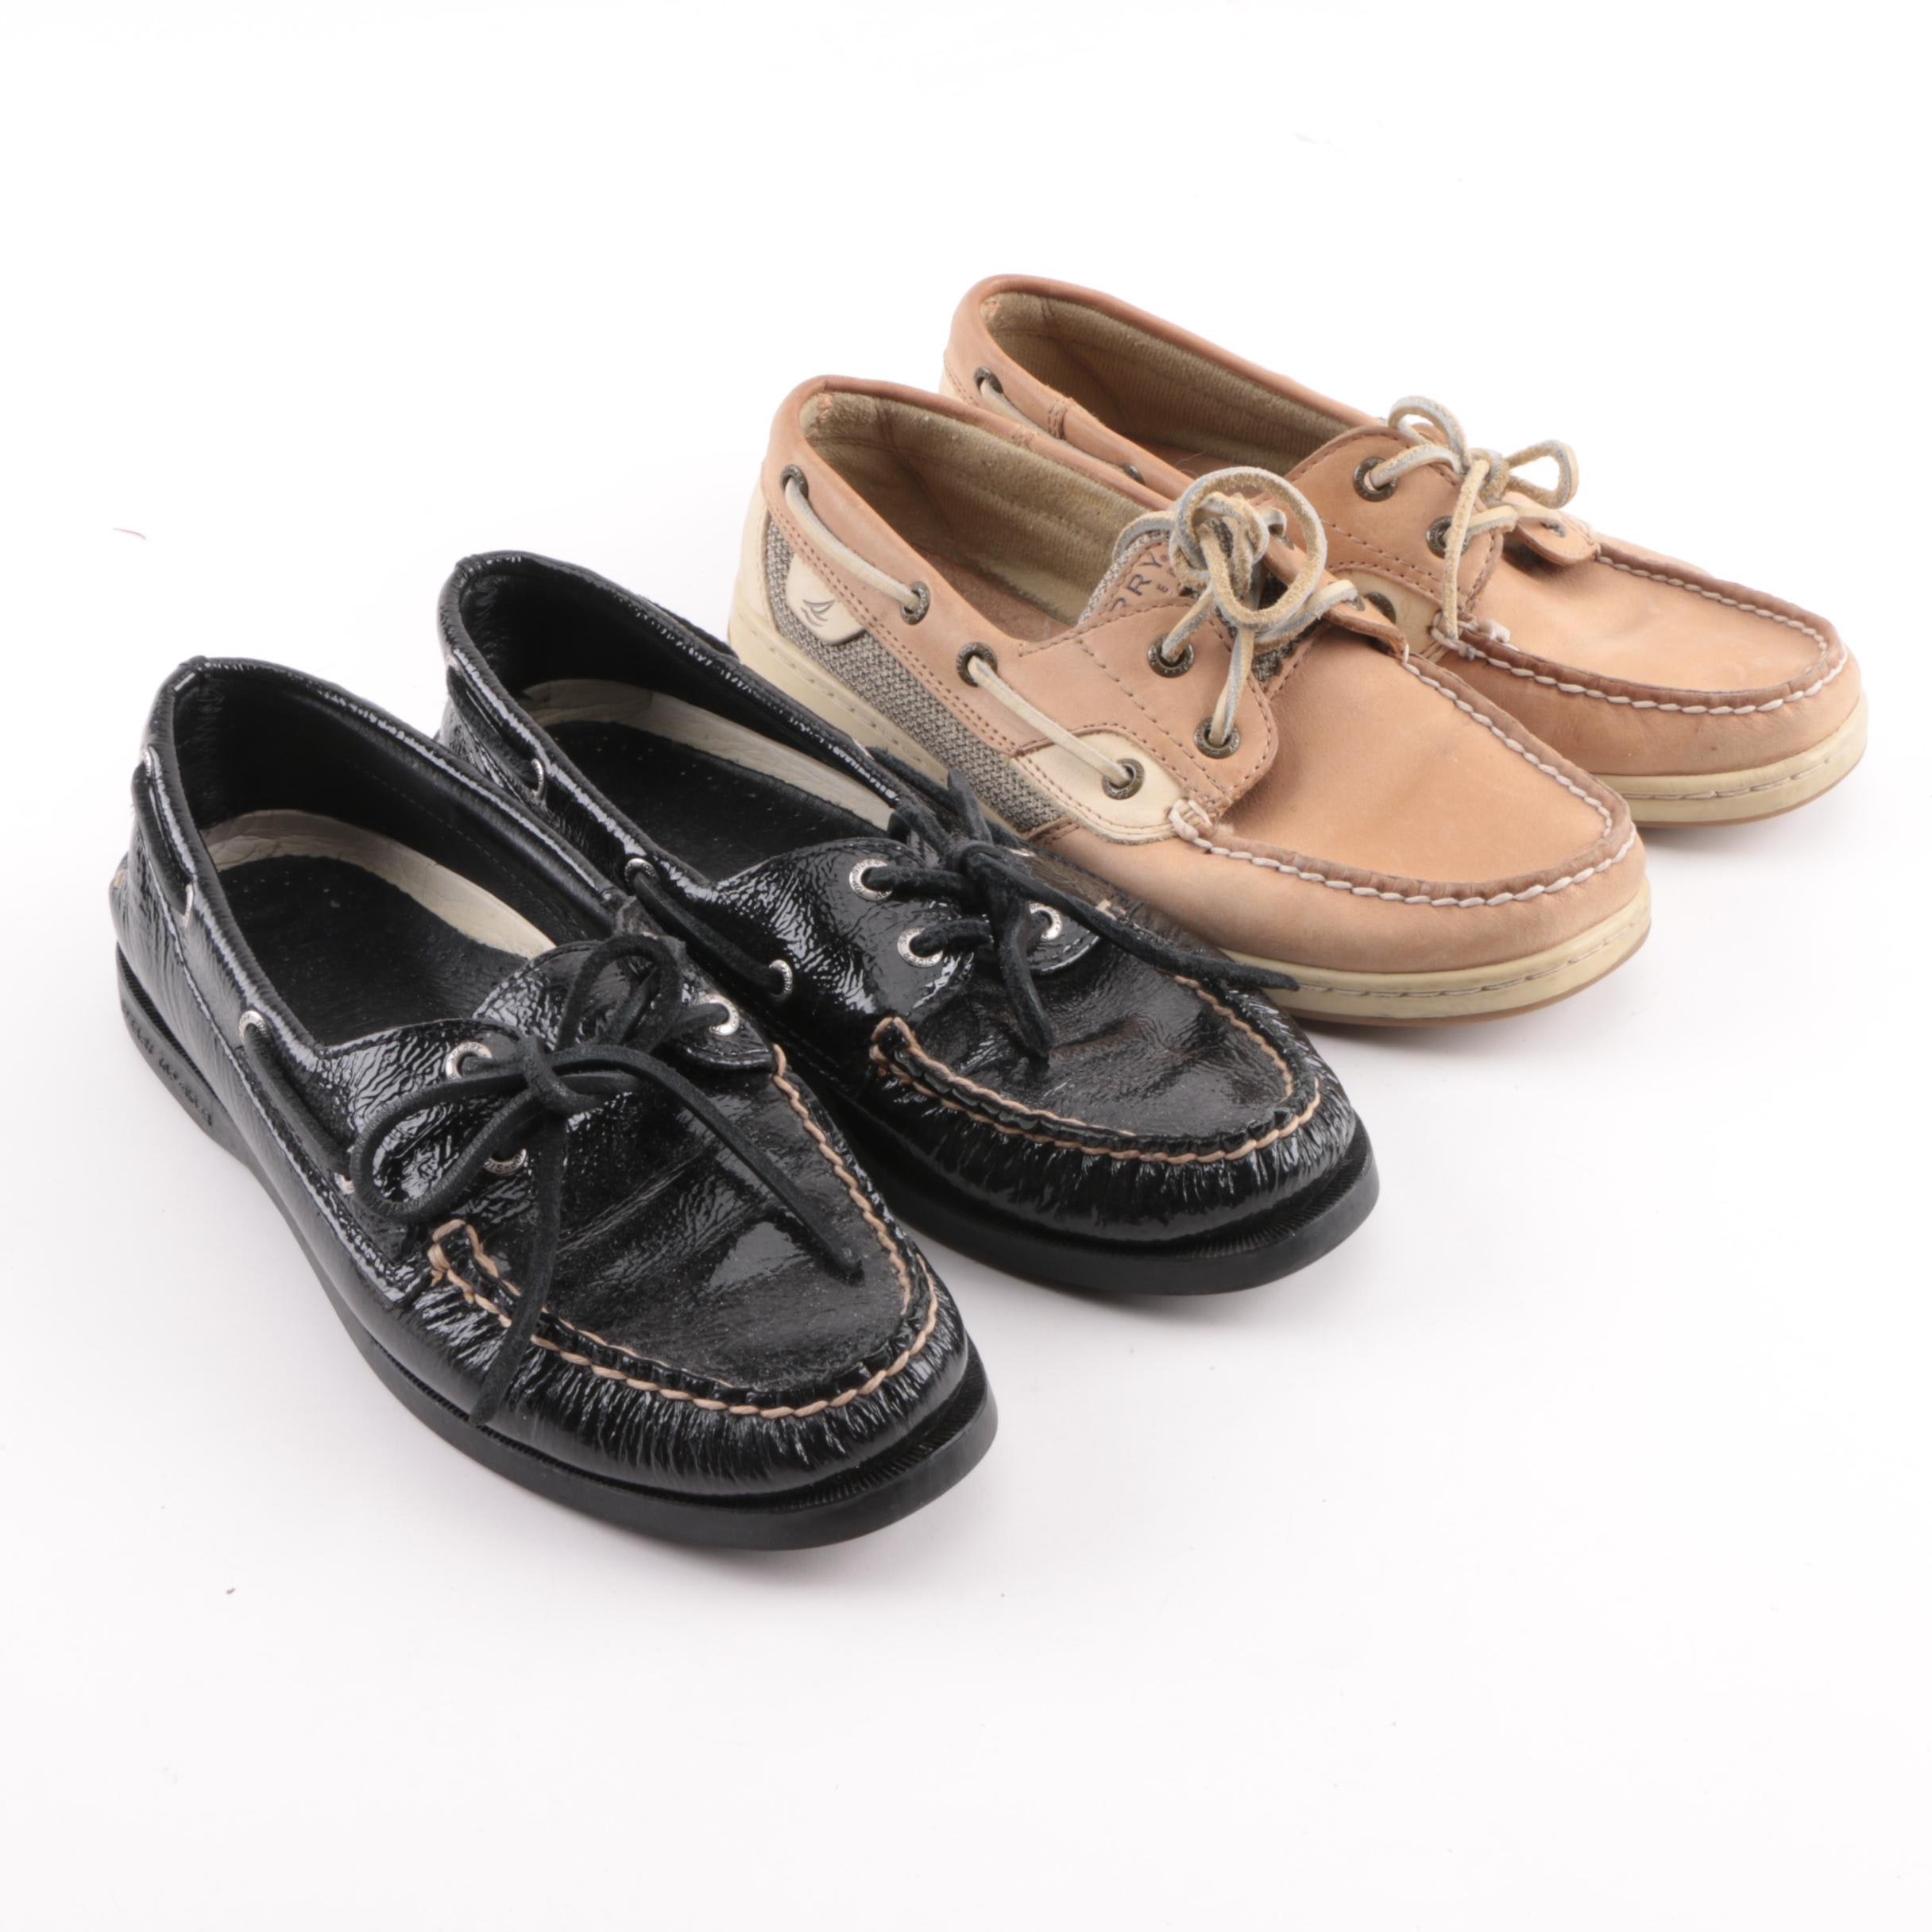 Women's Sperry Top-Sider Black Patent Leather and Beige Leather Boat Shoes